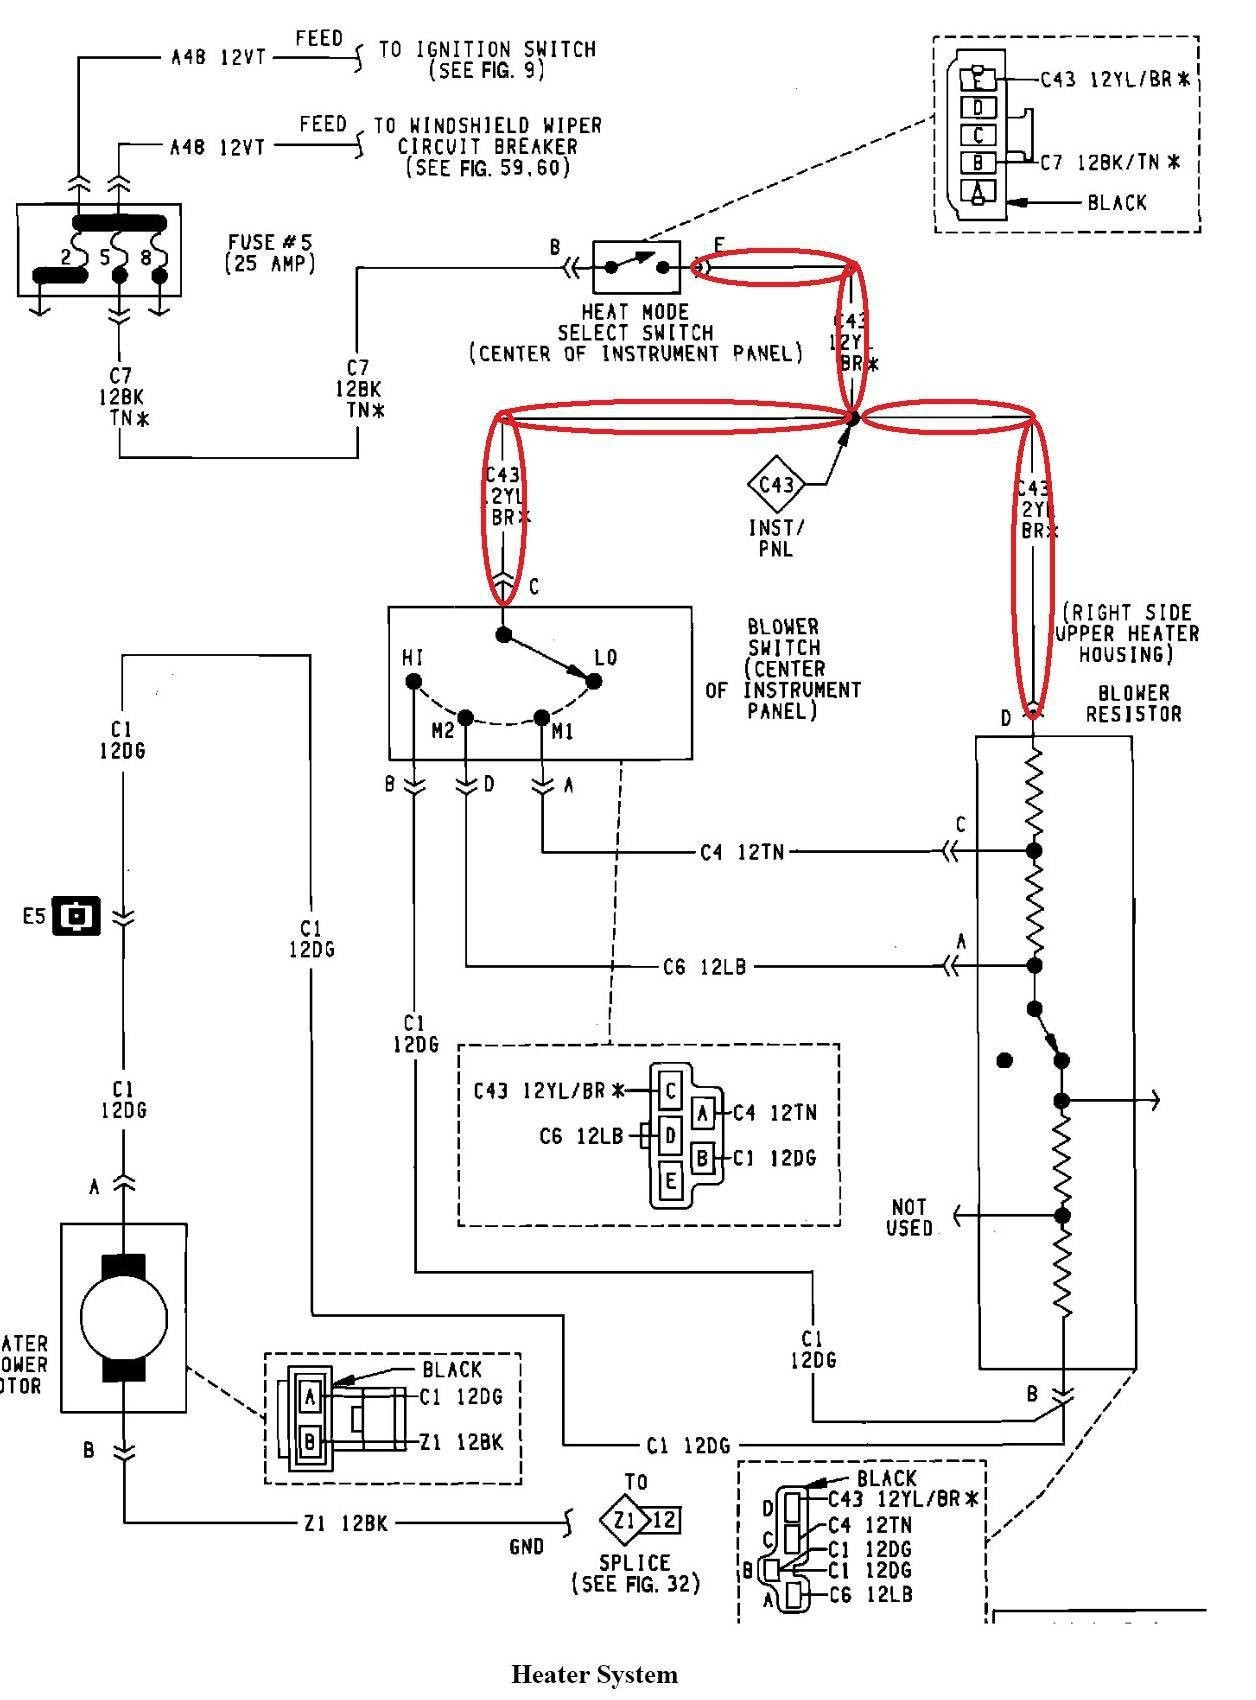 Club Car Charger Receptacle Wiring Diagram Rate Battery Wiring - E Z Go Golf Cart Batteries Wiring Diagram